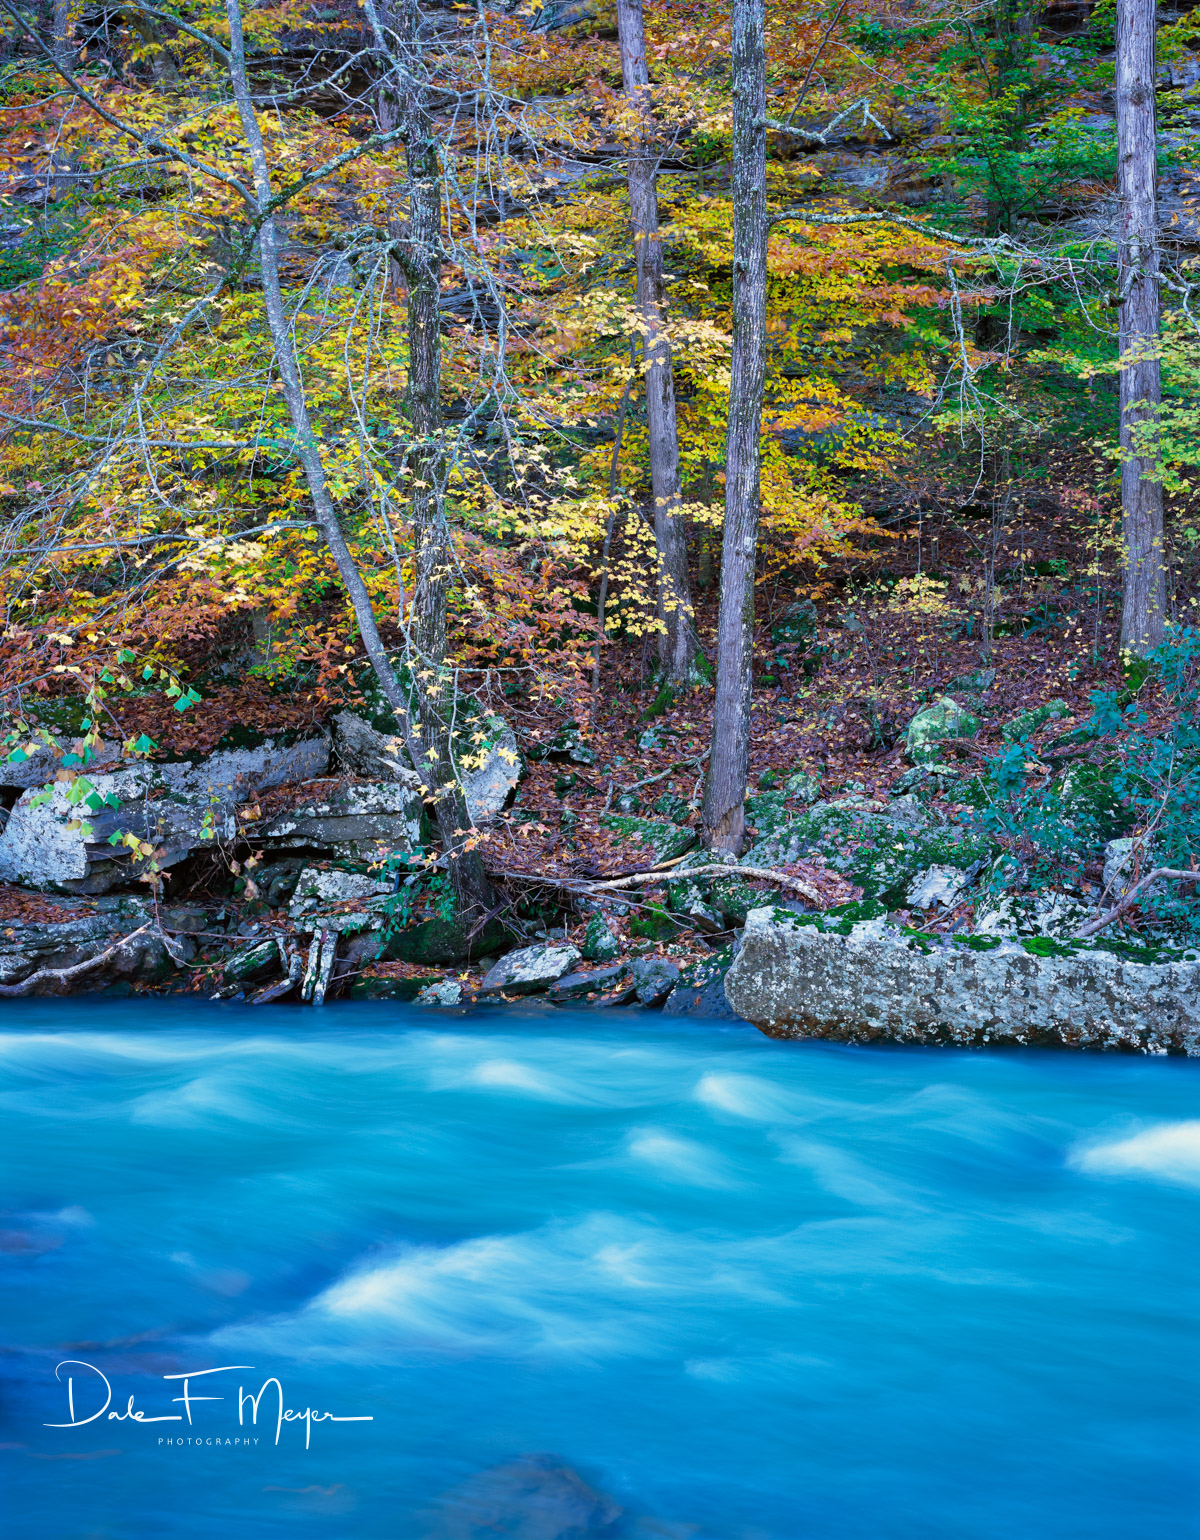 The beautiful Mulberry River in the glory of Fall. A rare Fall of high water and fall color made this a veryspecial image...